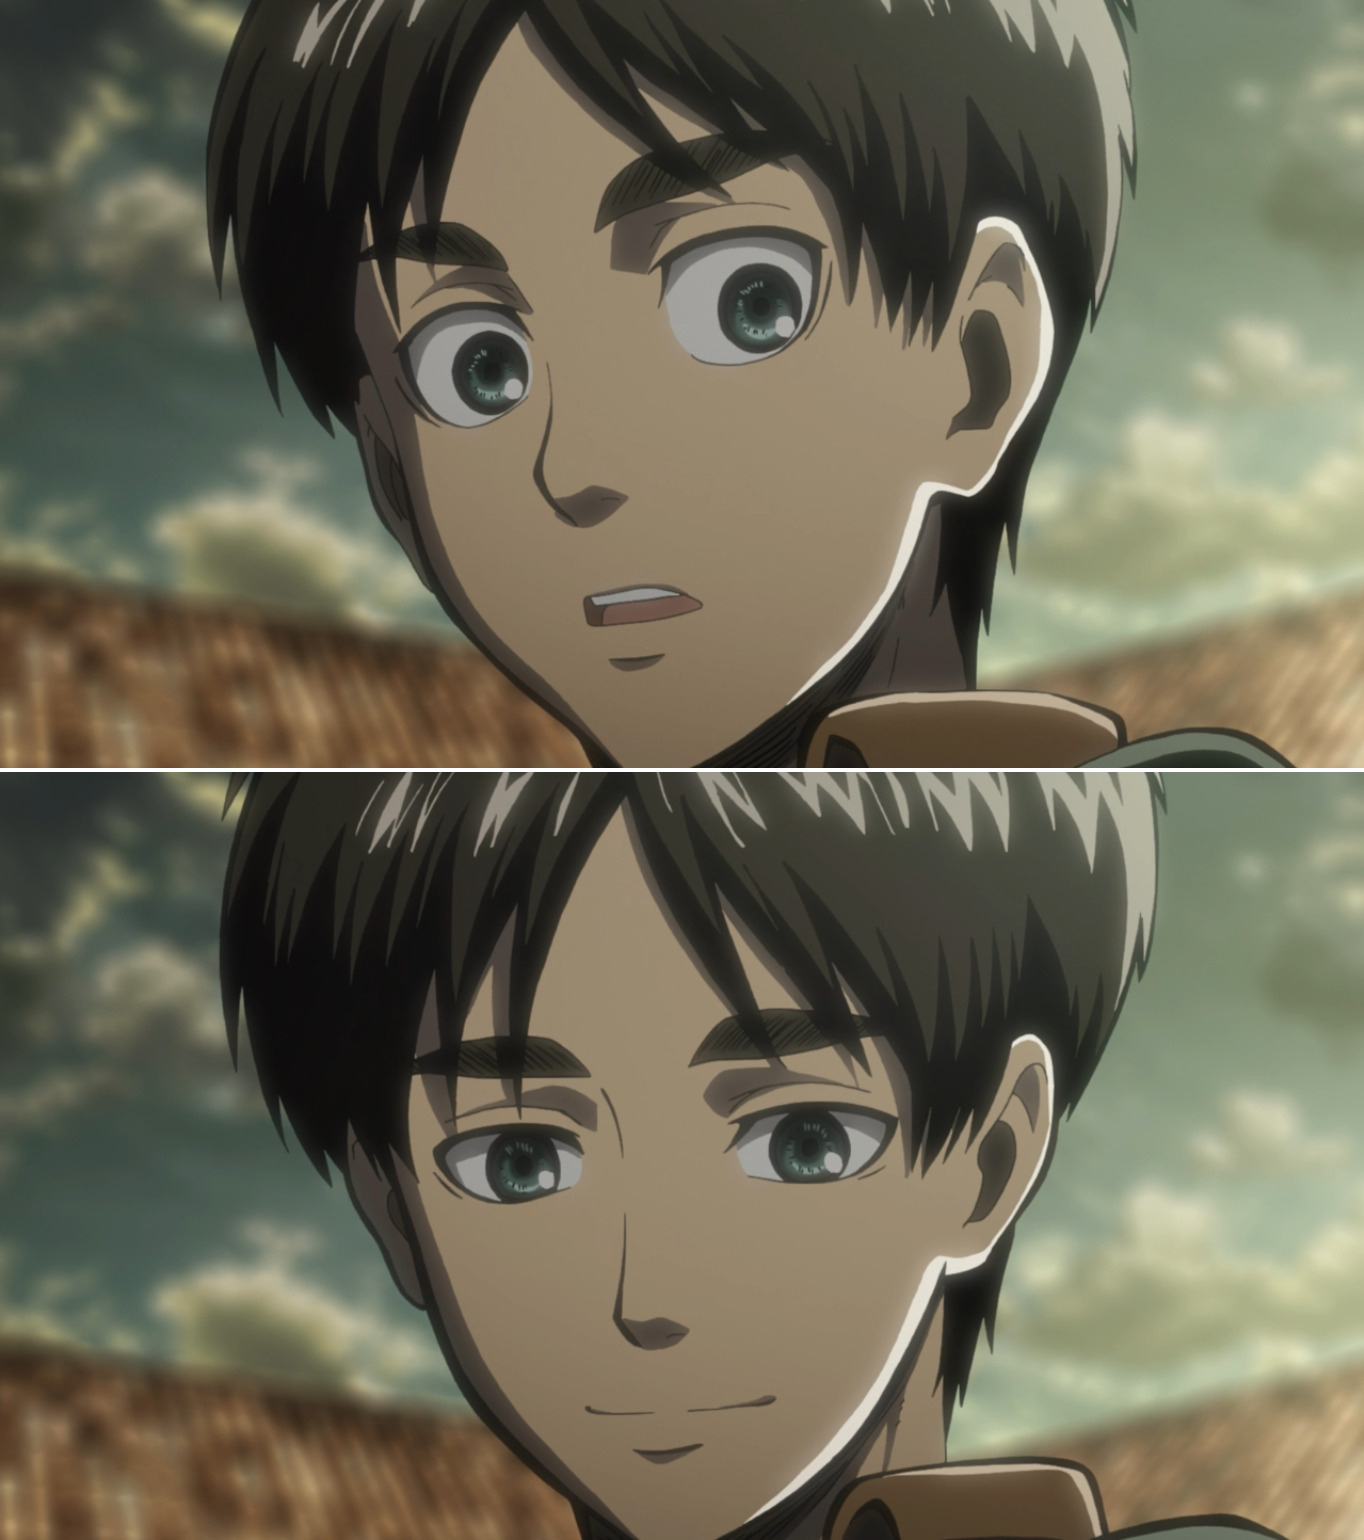 Sweet Eren Attack On Titan Season 1 Attack On Titan Season Attack On Titan Eren Attack On Titan Anime Author hajime isayama created eren to be an ordinary youngster who gets paralyzed with fear when he sees a titan rather than a stereotypical hotheaded protagonist often seen in shonen manga.1 he also stated that eren's wish. sweet eren attack on titan season 1